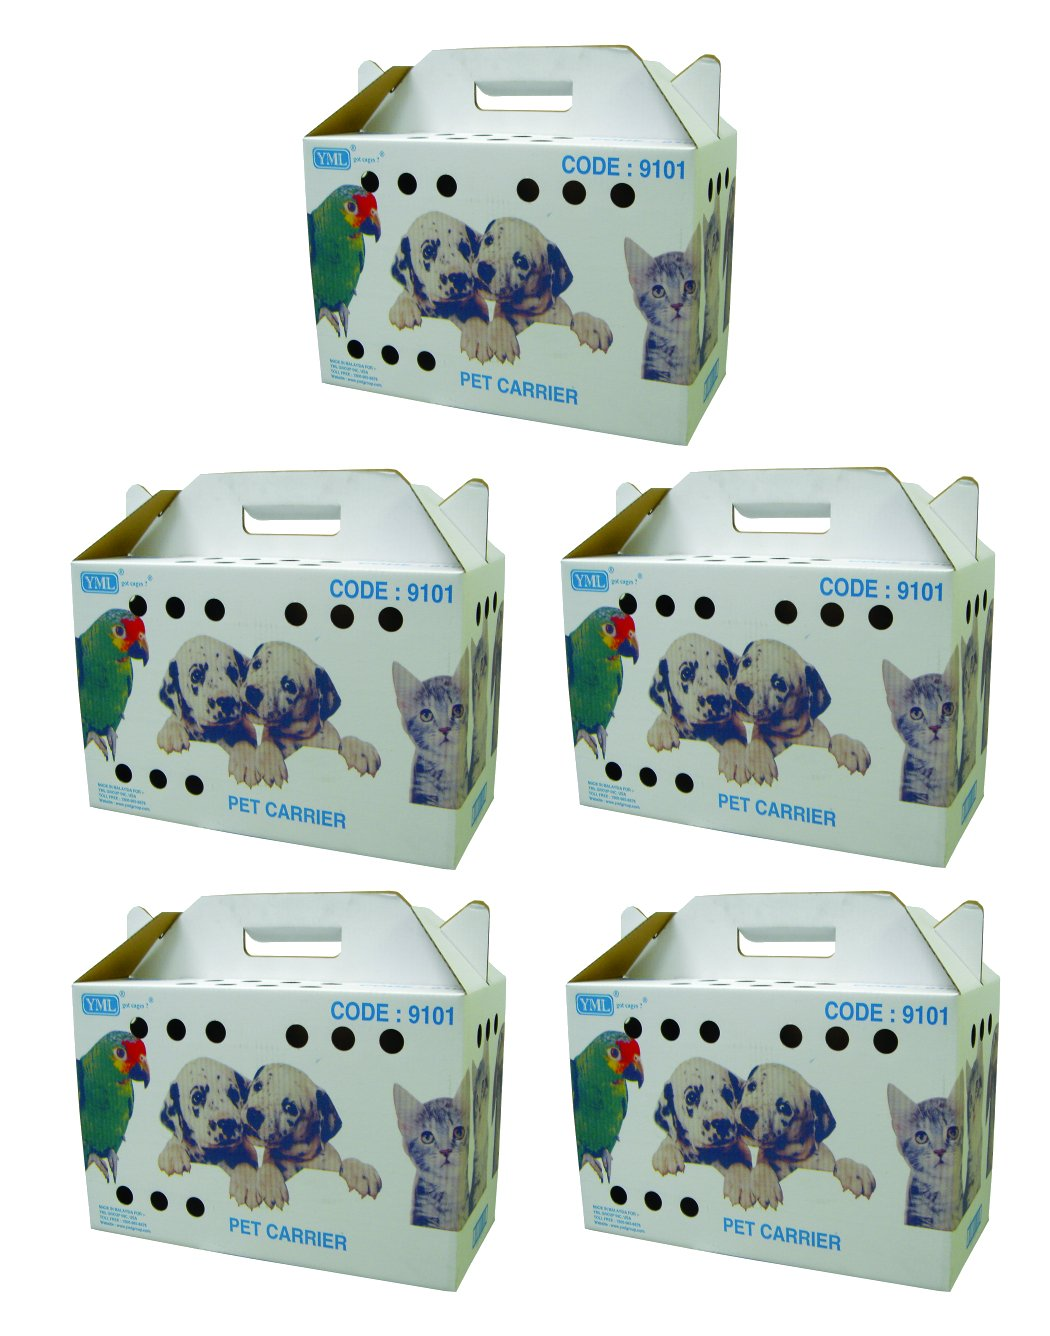 YML Travel Box for Small Animals, Lot of 5 YML GROUP INC 9101